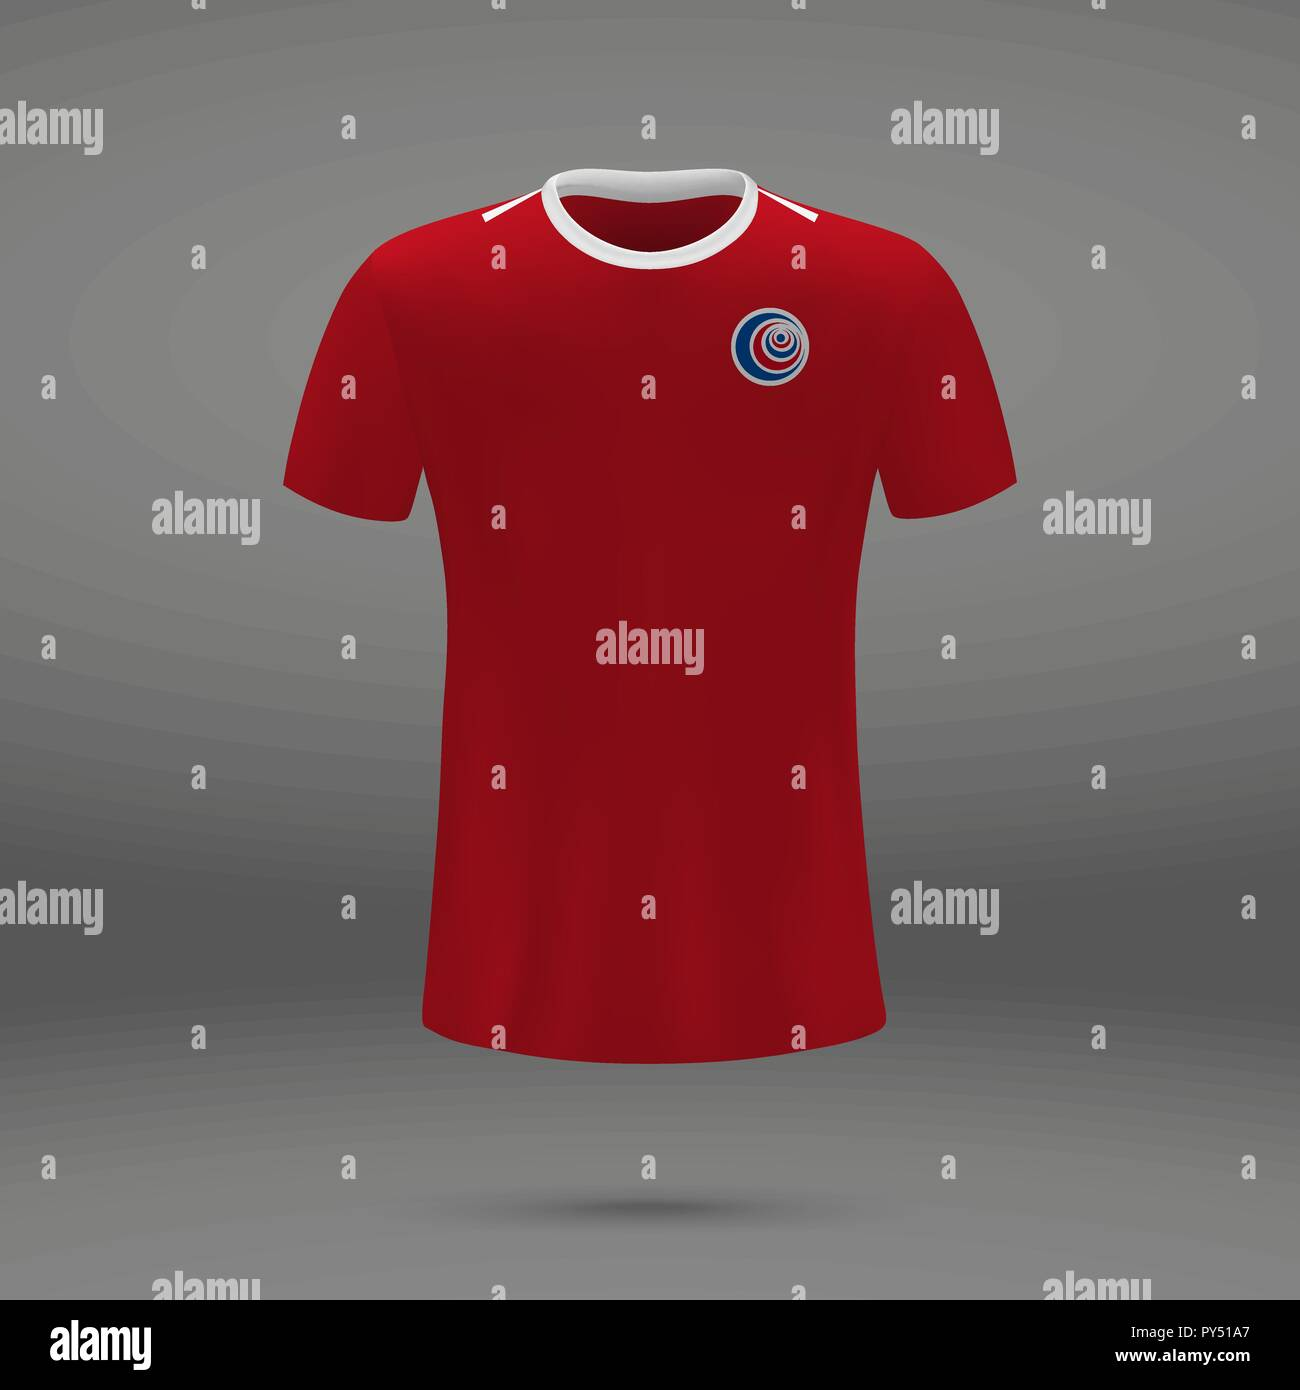 87304a4d072 football kit of Costa Rica, t-shirt template for soccer jersey. Vector  illustration